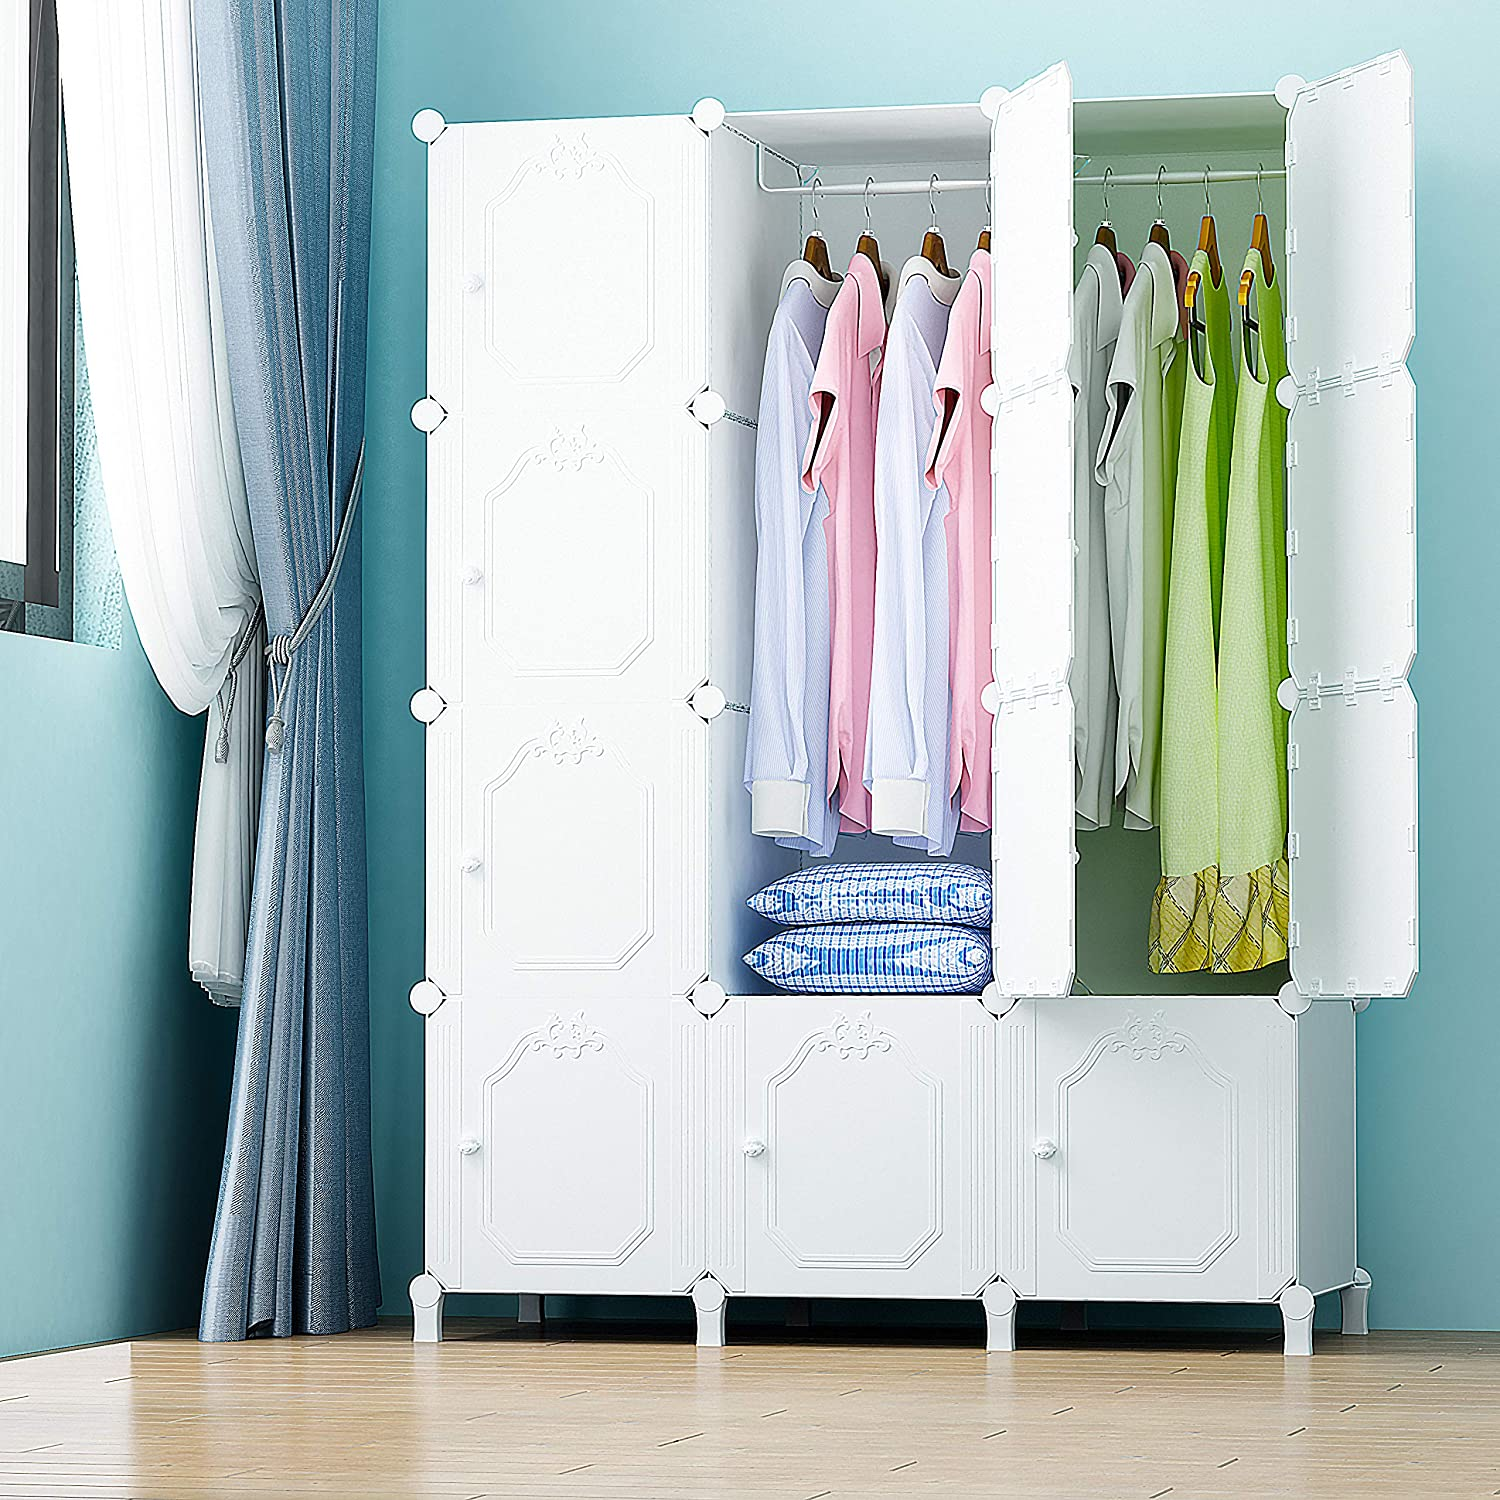 Towels for Home or Office Toys PREMAG Wardrobe Made of Plastic Modules for Storage of Clothes 10 Cubes Accessories or Books